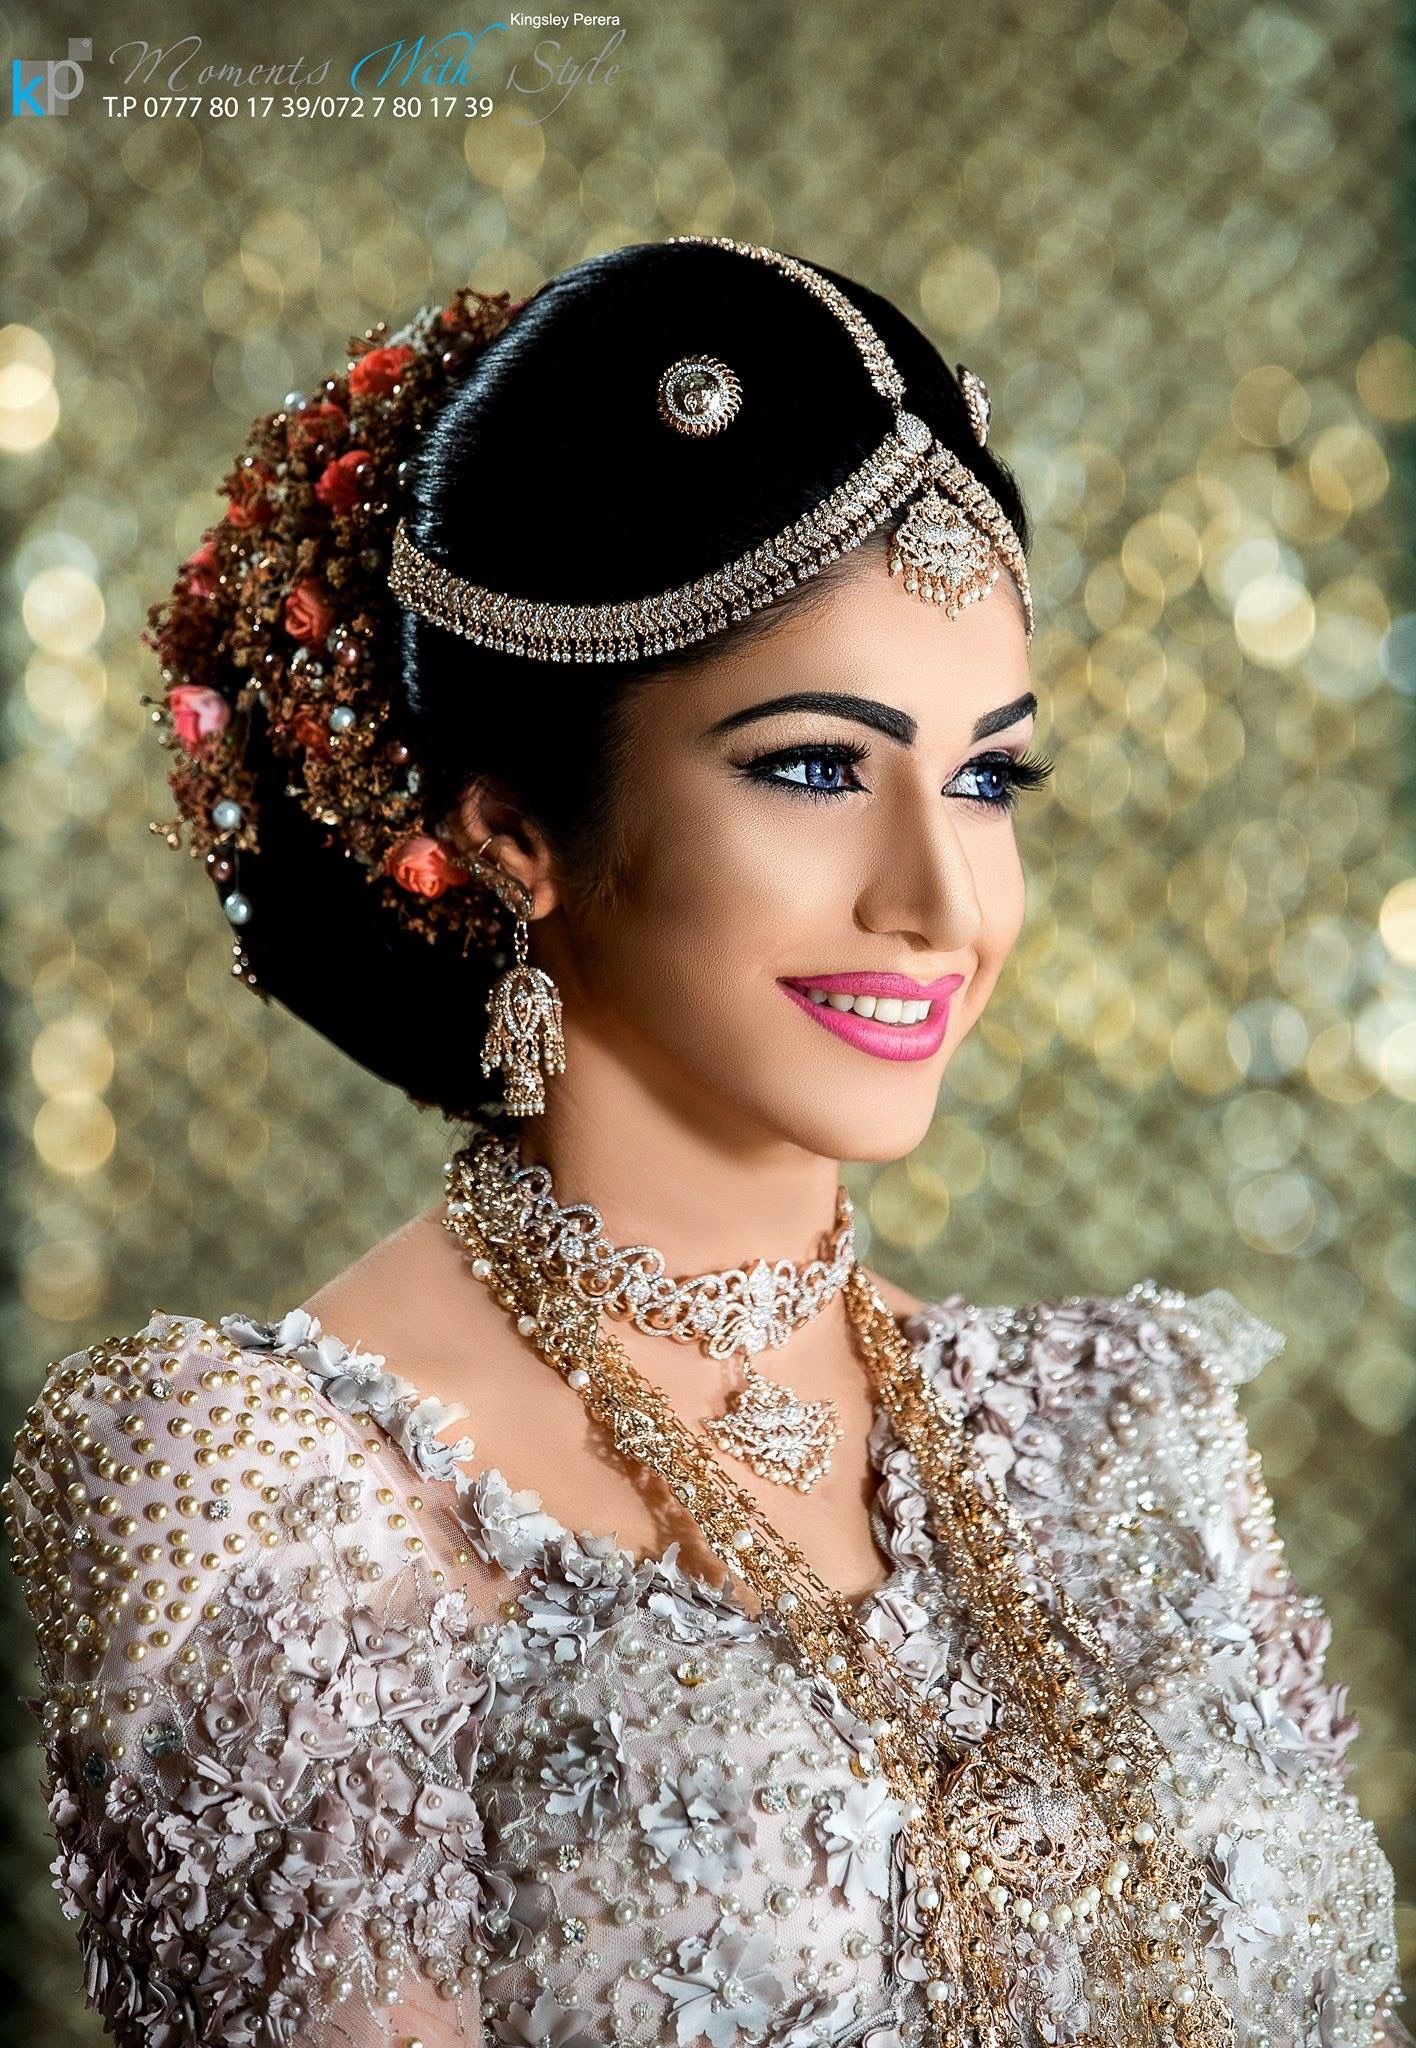 Pin By Sachi On Kandyan Bridal Sri Lanka Bridal Headdress Bridal Outfits Stunning Bride